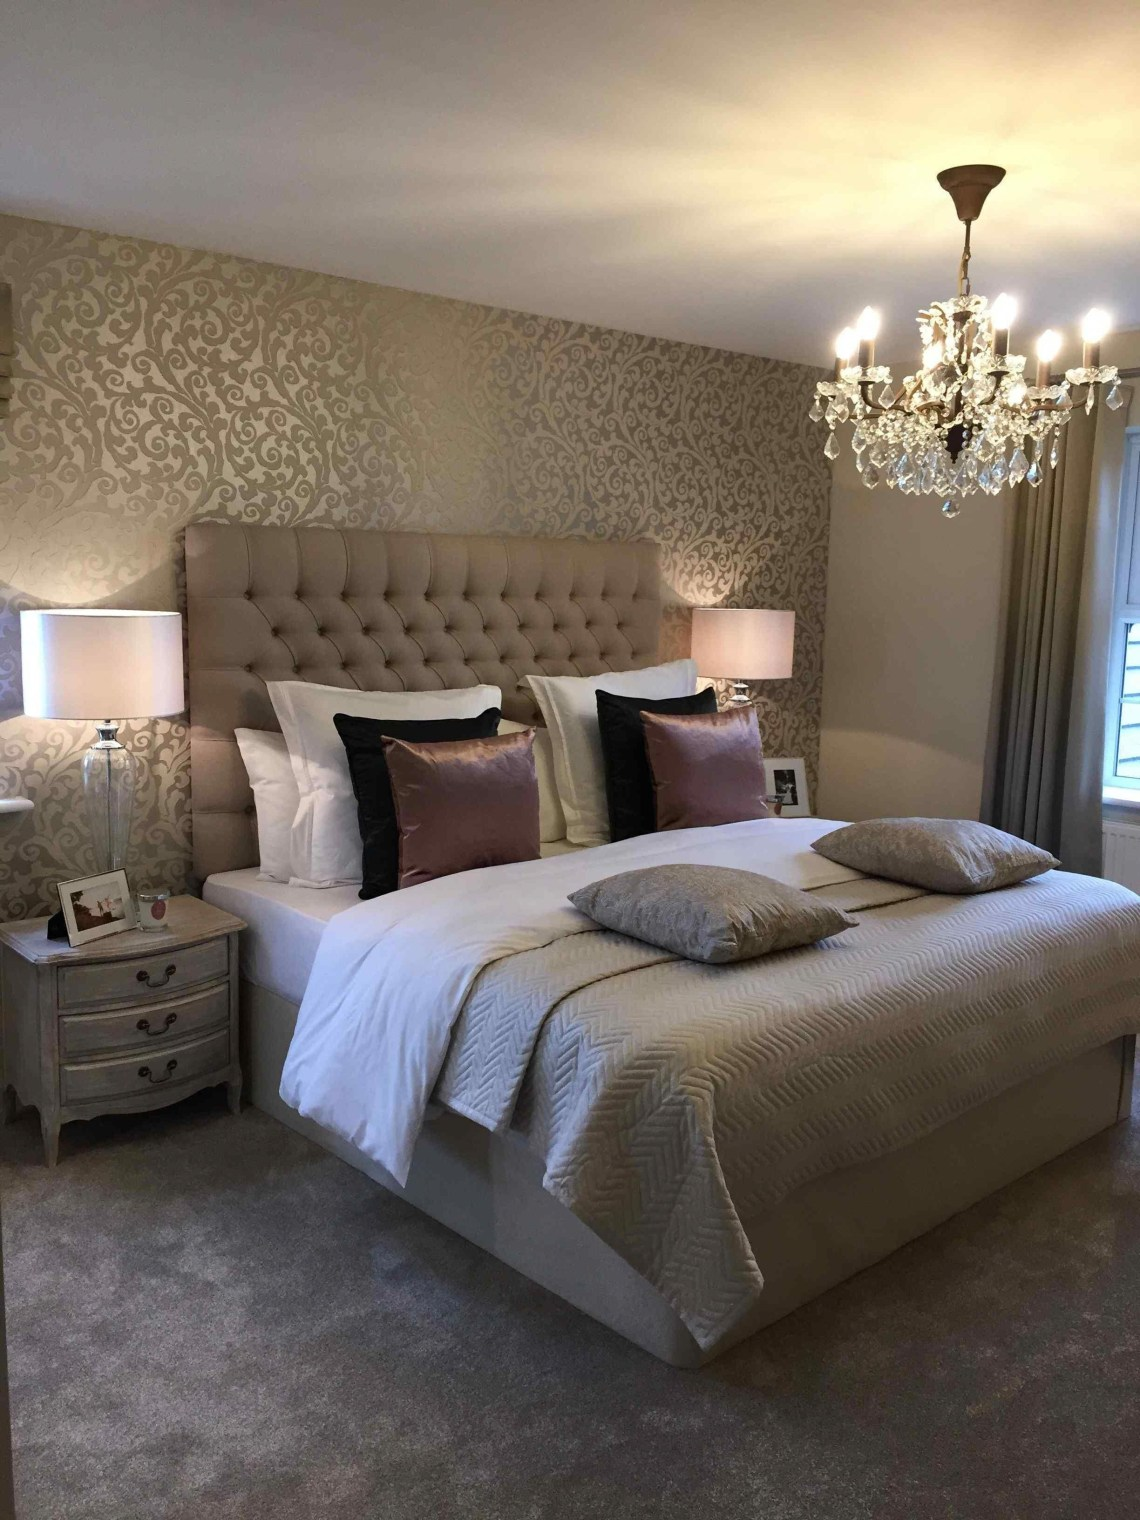 Most Popular Ways To Inspirational First Home Ideas Decor